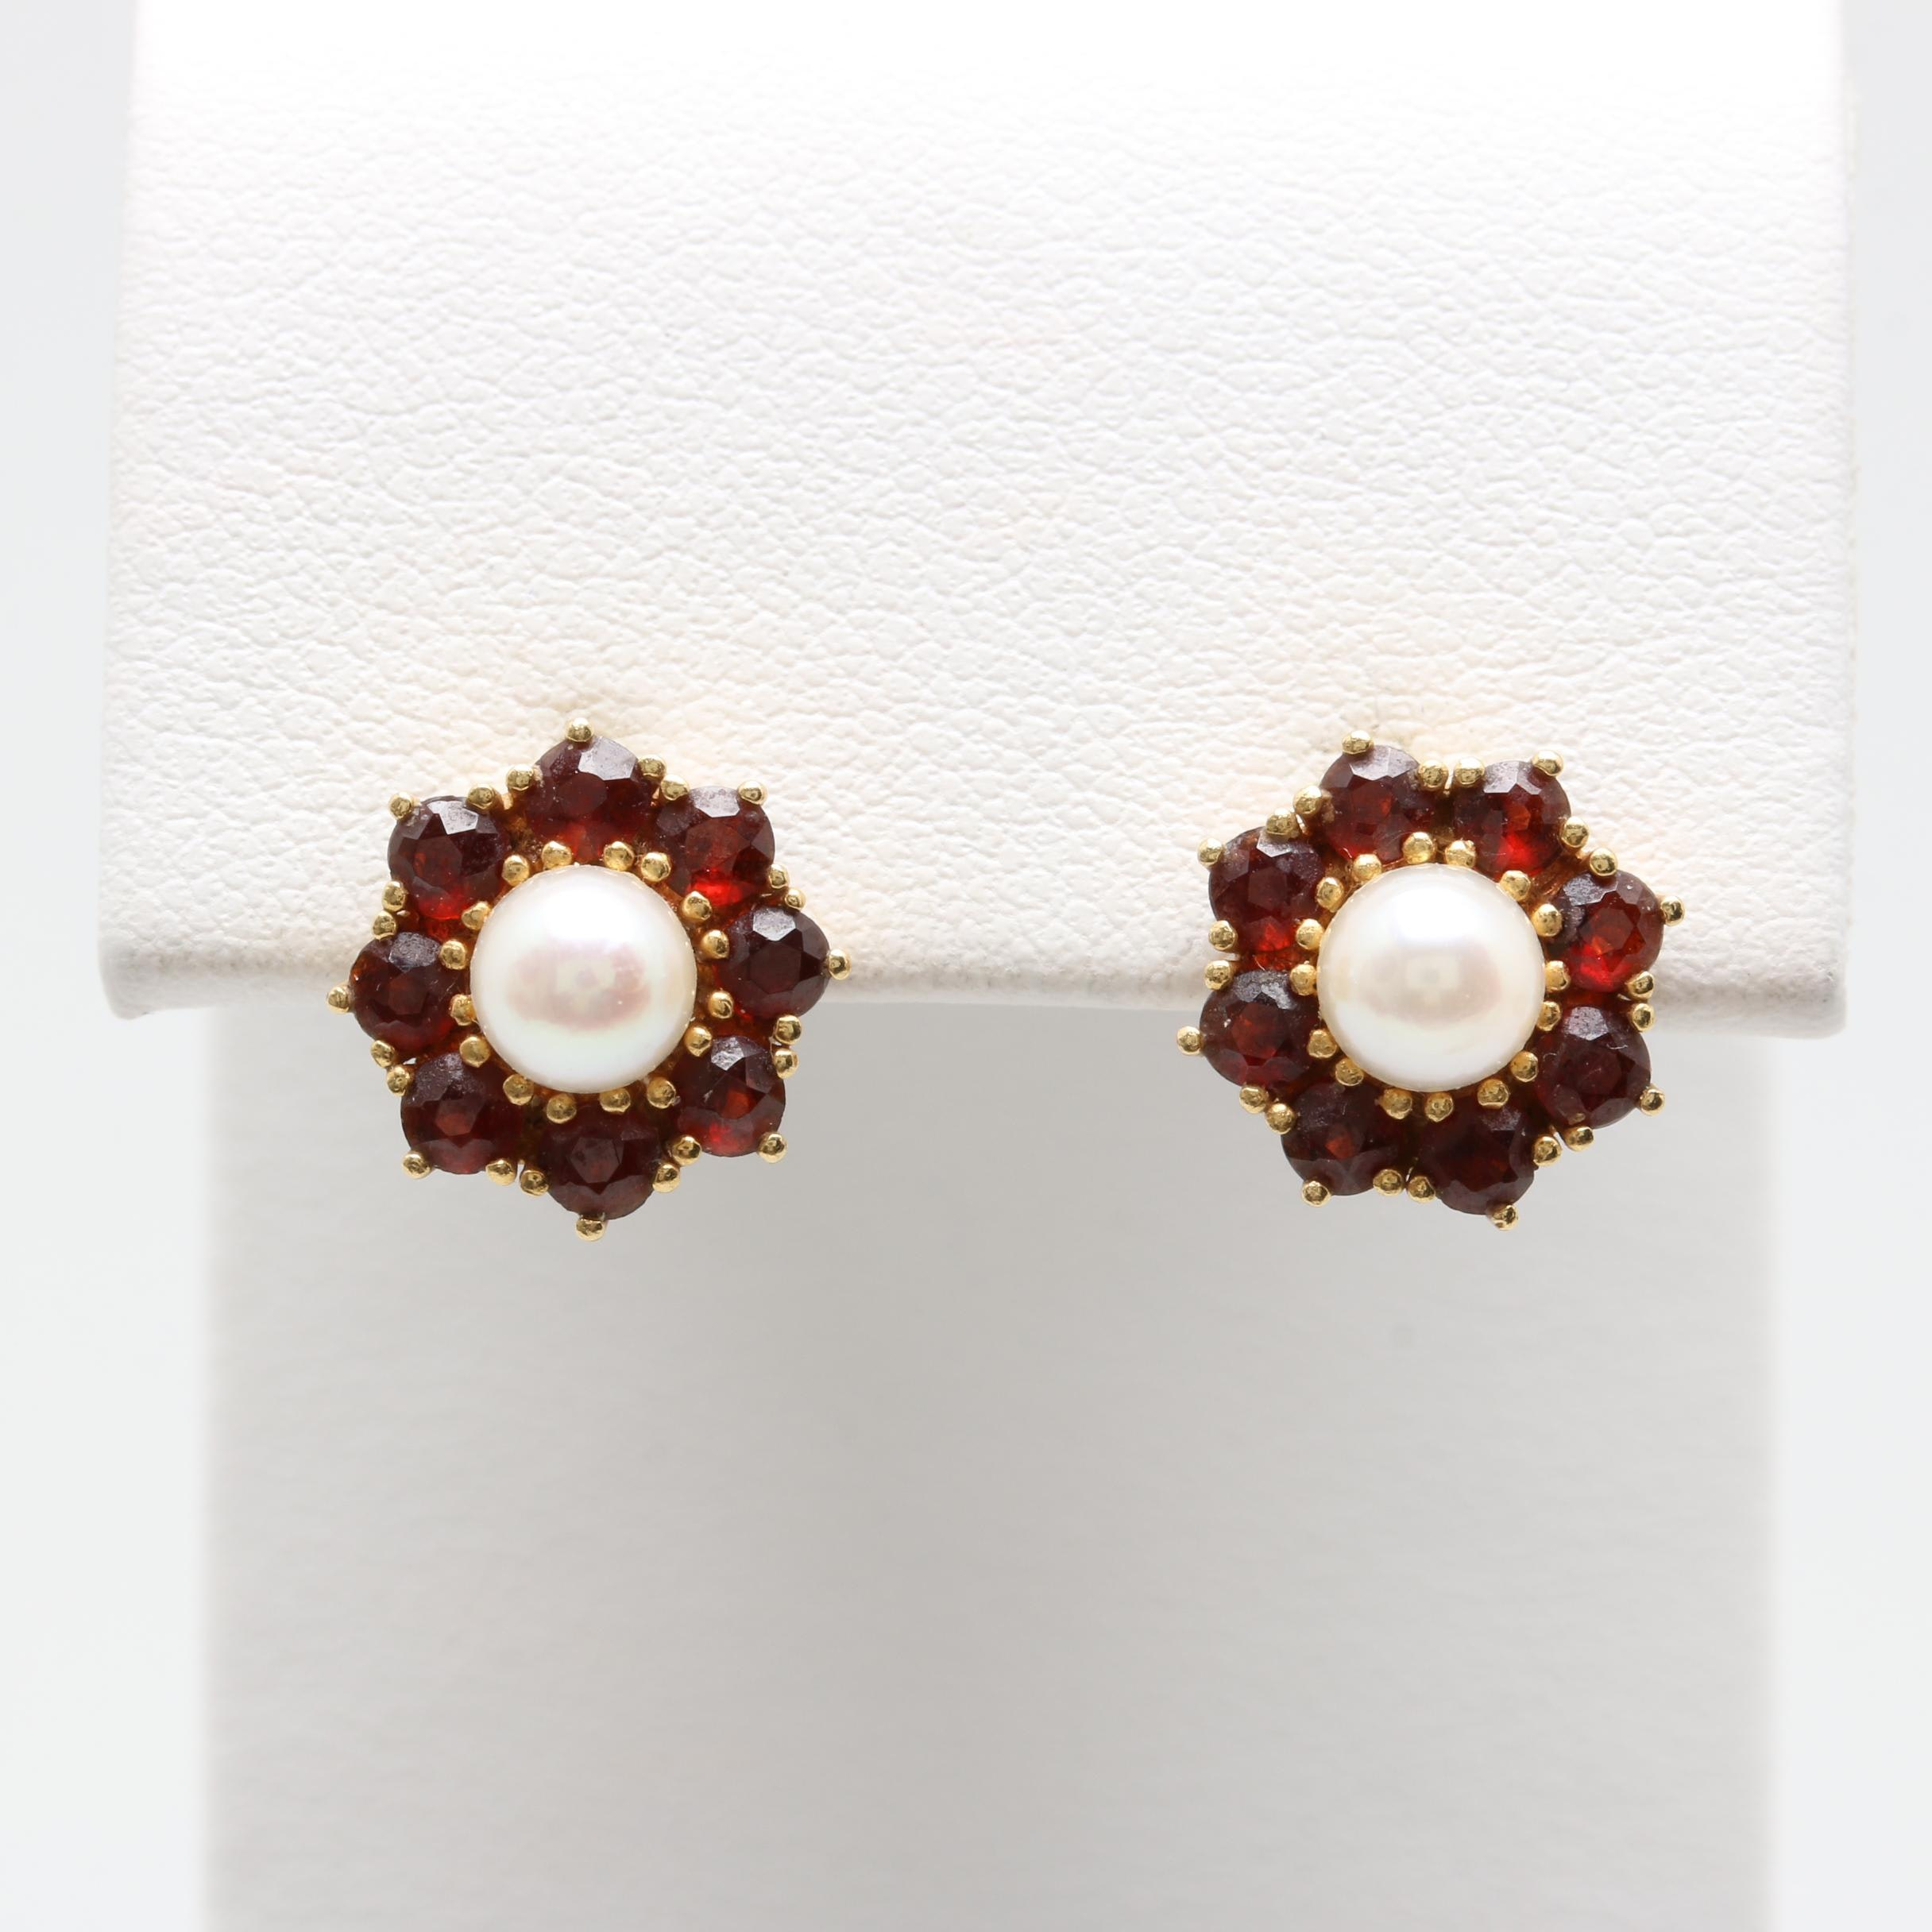 18K Yellow Gold Cultured Pearl and Garnet Earrings